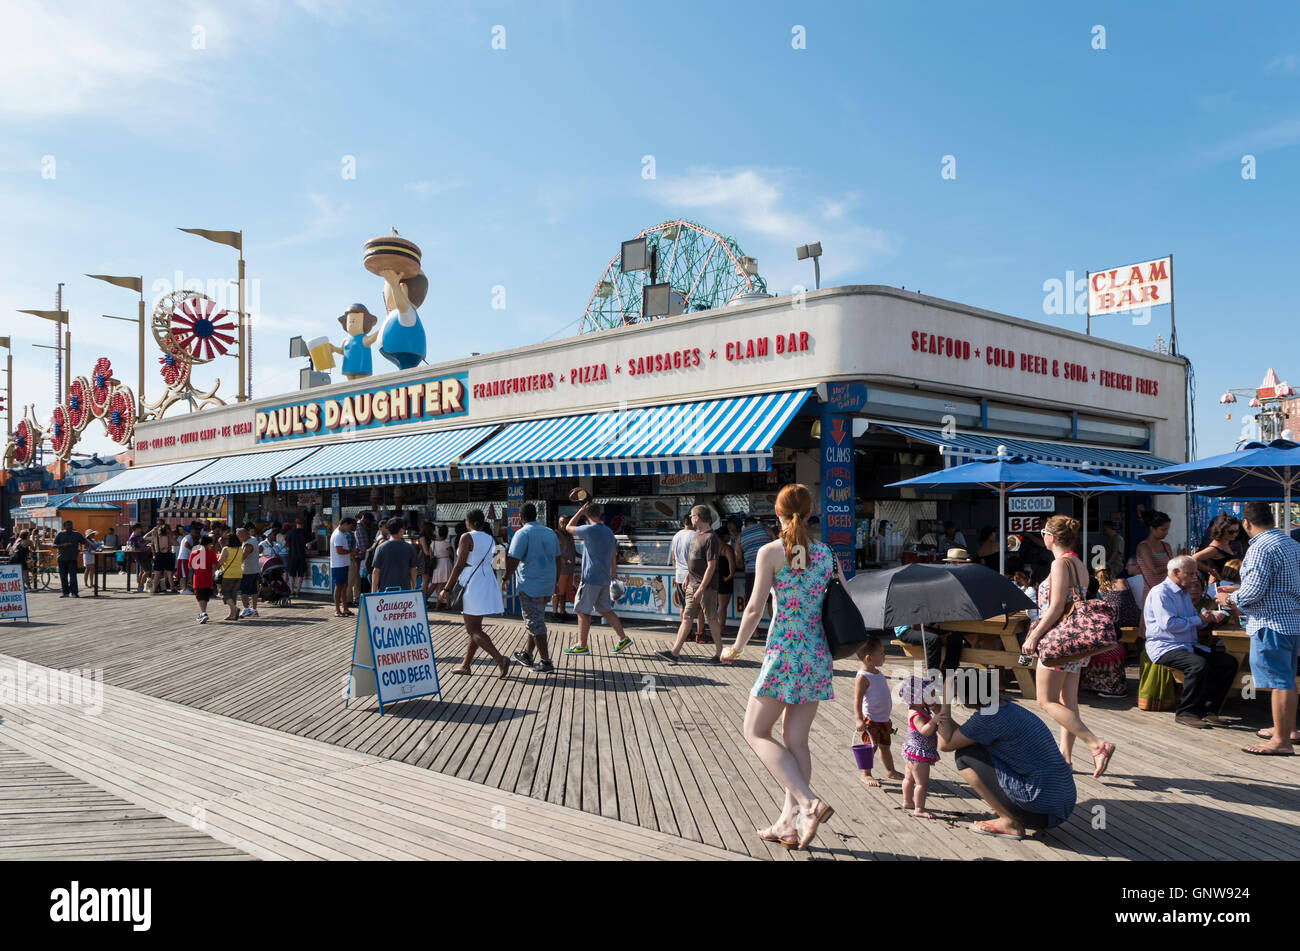 People sitting outside of Paul's Daughter bar and restaurant and clam bar on Coney Island boardwalk, Brooklyn, - Stock Image